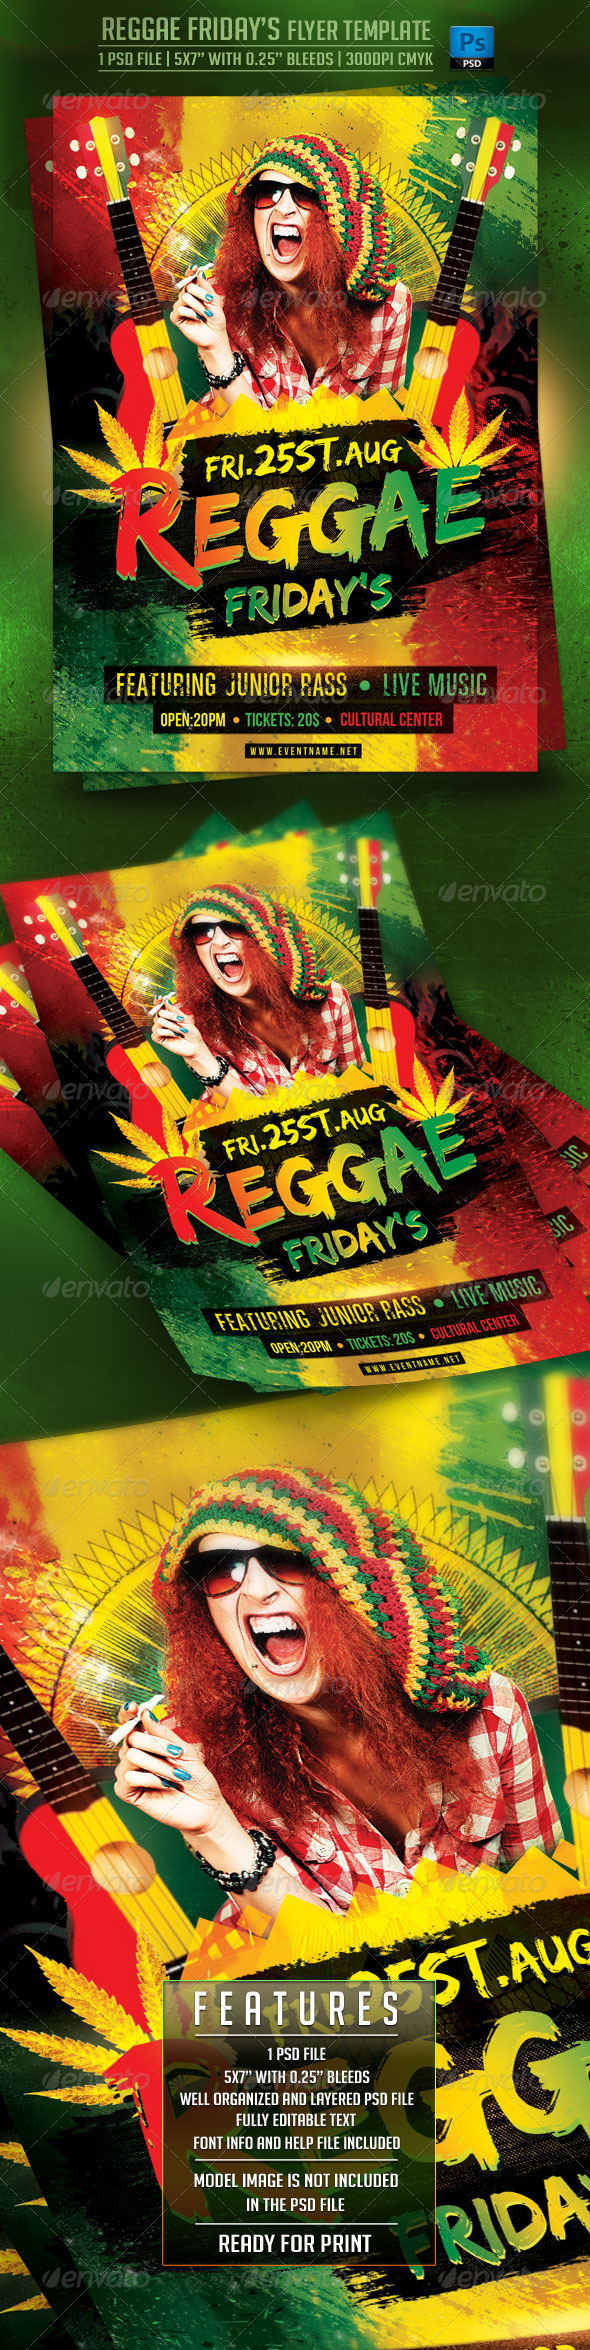 GraphicRiver Reggae Friday s Flyer Template 7843054